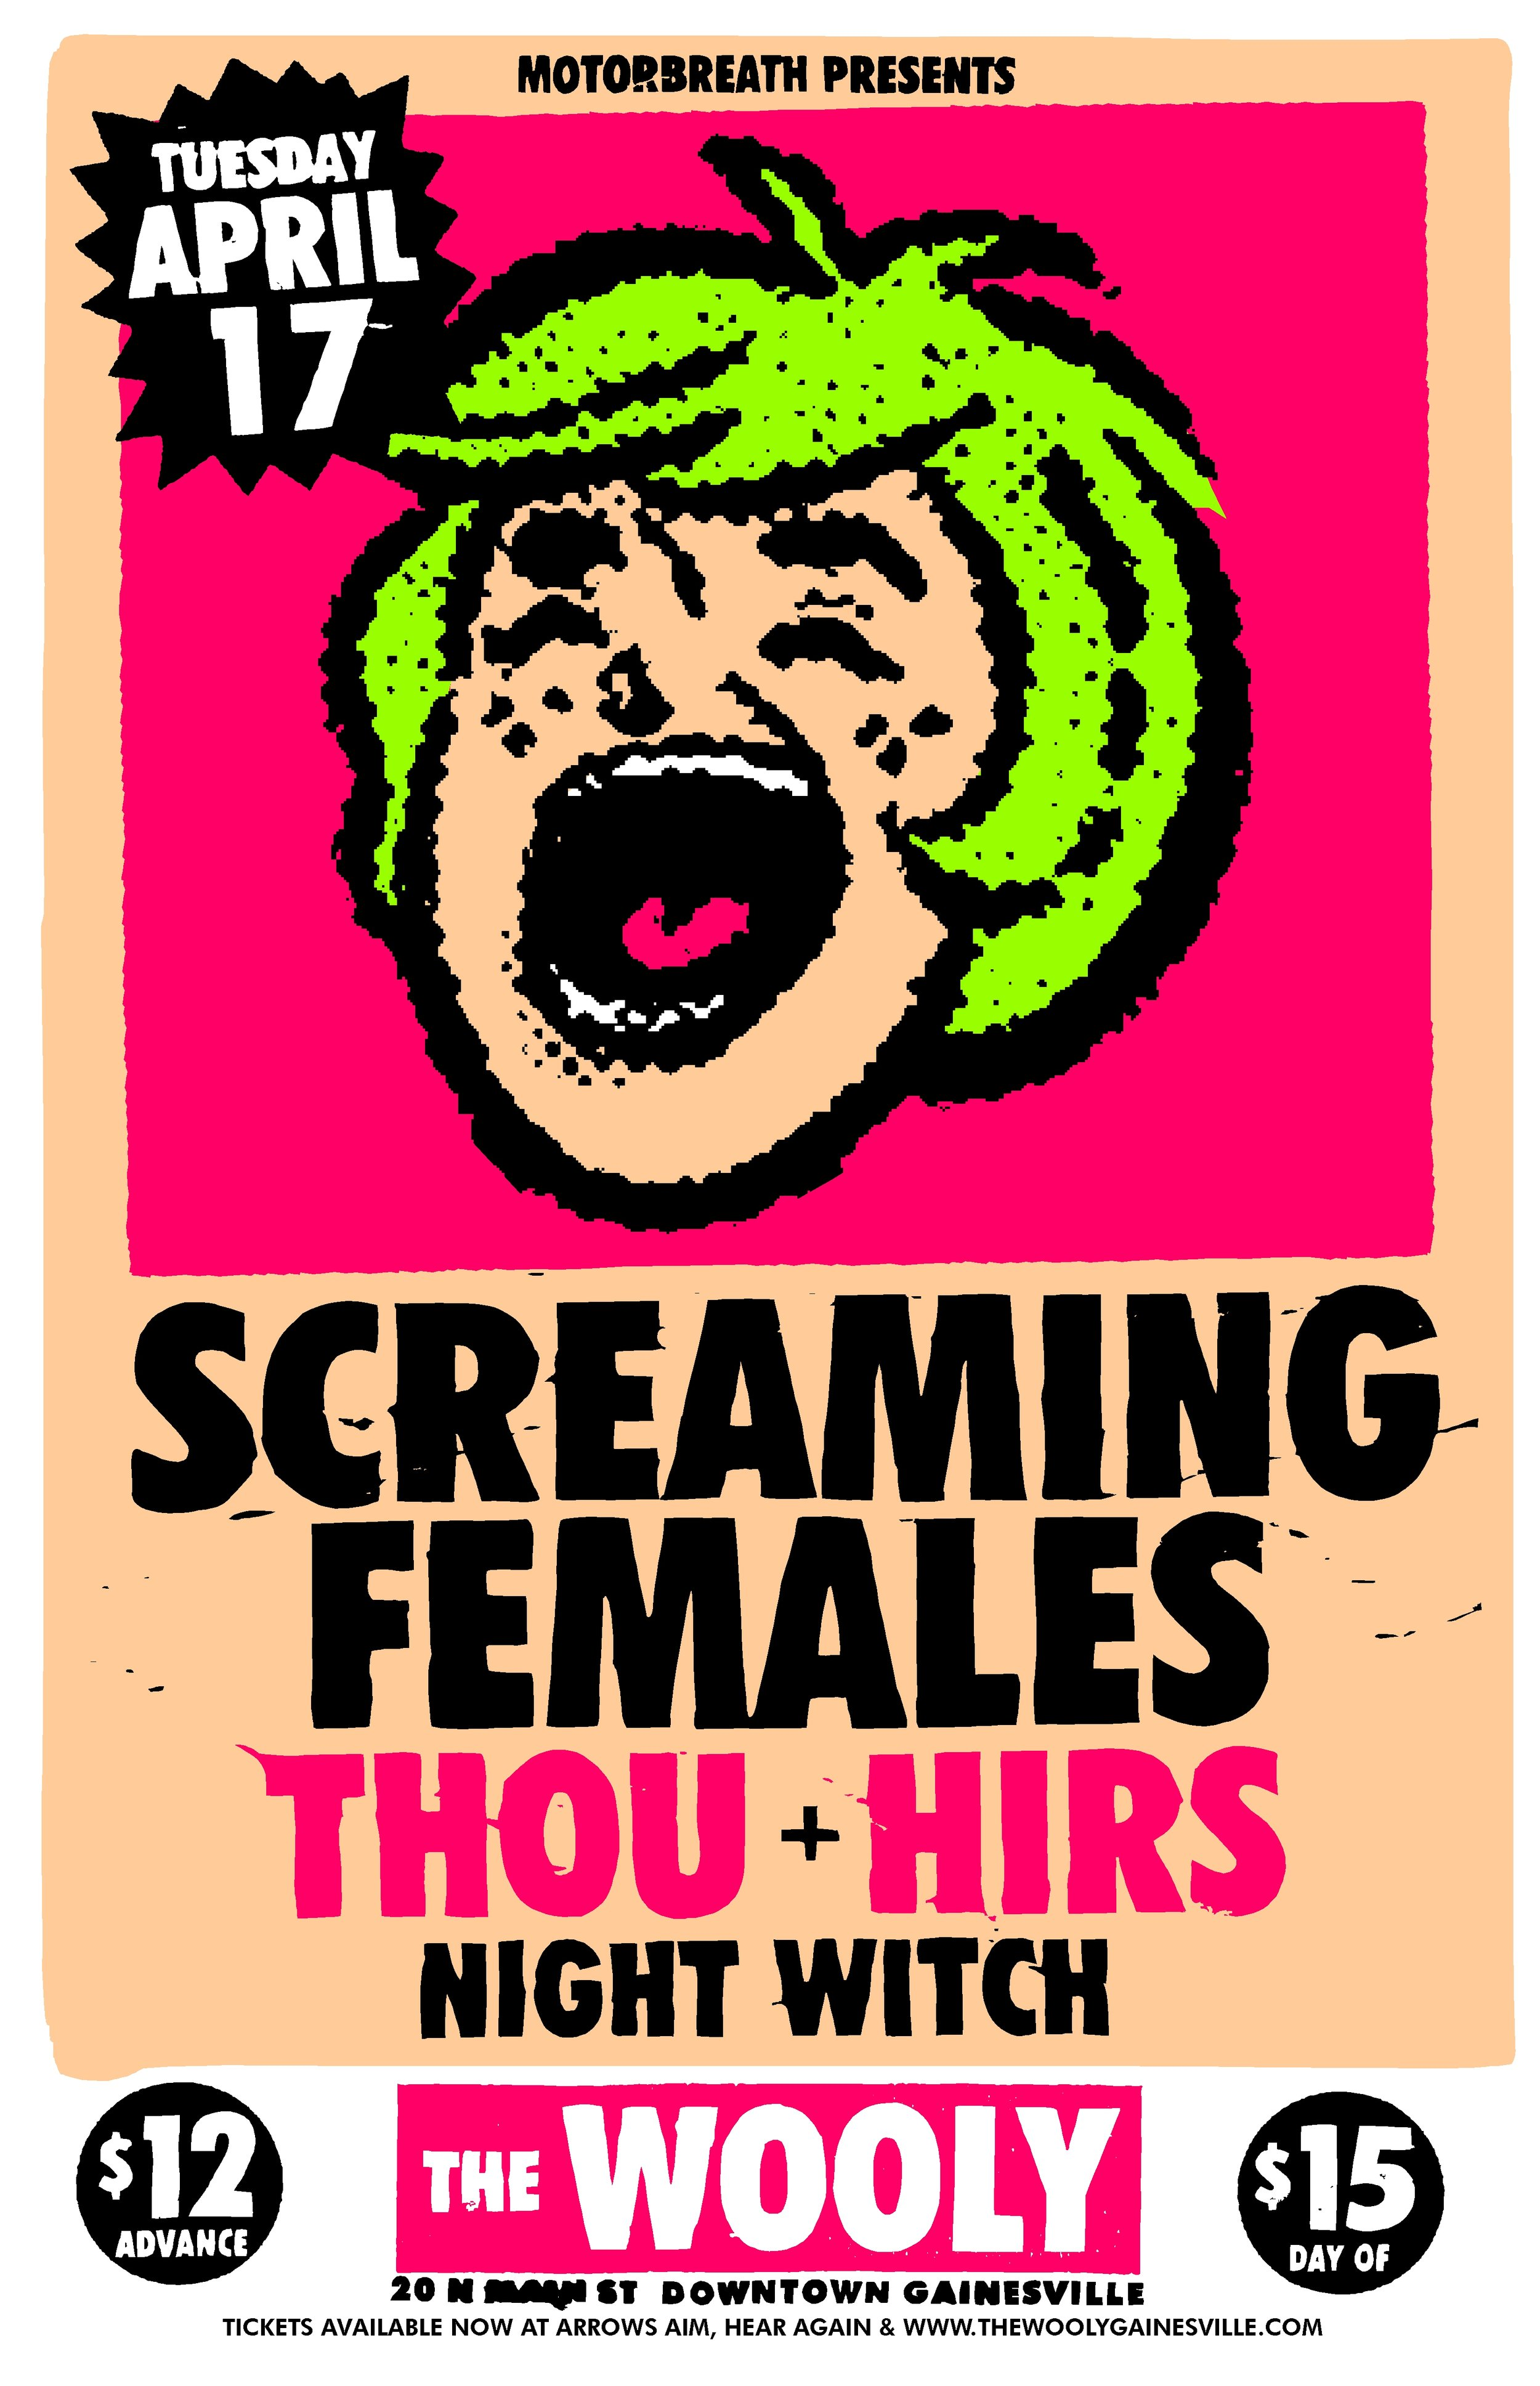 Tuesday, April 17 Motorbreath Presents:   Screaming Females   https://screamingfemales.bandcamp.com/   Thou   https://thou.bandcamp.com/    HIRS   https://hirs.bandcamp.com/    Night Witch   https://nightwitchfl.bandcamp.com/   Doors at 8pm  $12adv/$15dos You can also buy tickets at these fine local outlets: Arrow's Aim Records & Hear Again Records  ------------------------------- Formed in New Brunswick, NJ in 2005, Screaming Females is Marissa Paternoster (guitar, vox), Mike Abbate (bass), and Jarrett Dougherty (drums). Over six albums and more than a decade of music making, the band has remained deeply individual and steadfastly DIY. They have also grown into one of the most dynamic and devastating touring bands going today.  Out February 23rd, All At Once, is the trio's most expansive and imaginative work to date -- a double LP that swings between surreal miniatures and and solo-heavy sprawl. Concision takes a backseat to experimentation, with arrangements meant to evoke the energy and spontaneity of their live shows. It's music built across a timeline that's longer than our internet-enhanced moment typically tolerates and a testament to the band's dedication and perseverance.